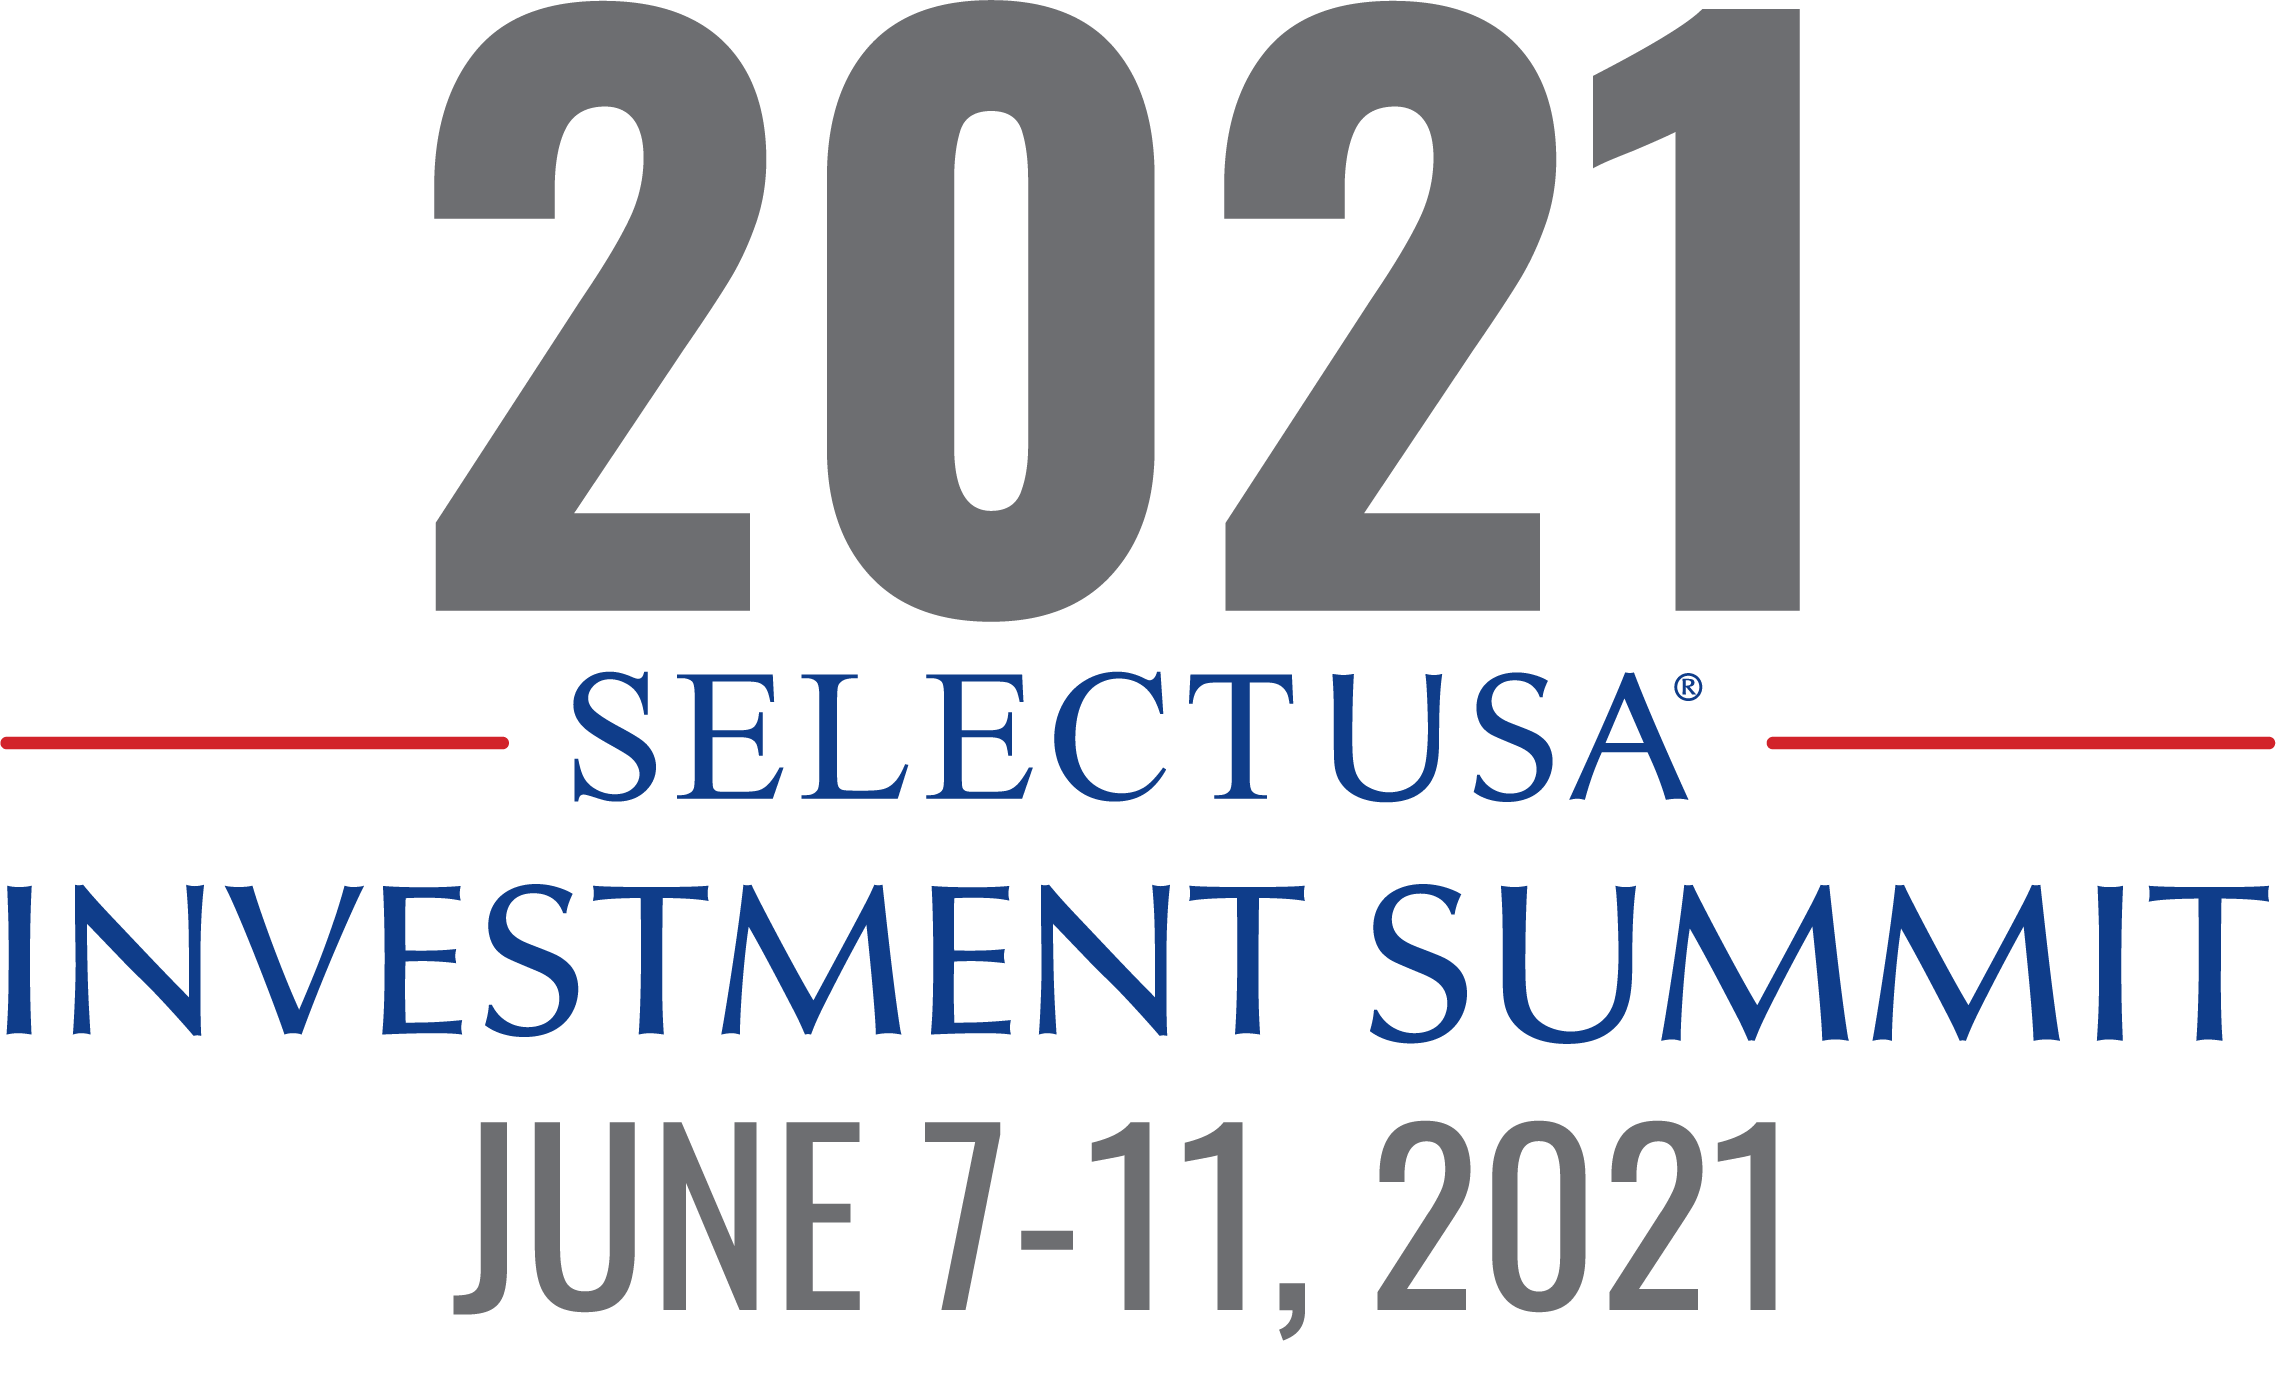 SelectUSA Investment Summit - June 10-12, 2019, Washington, D.C.